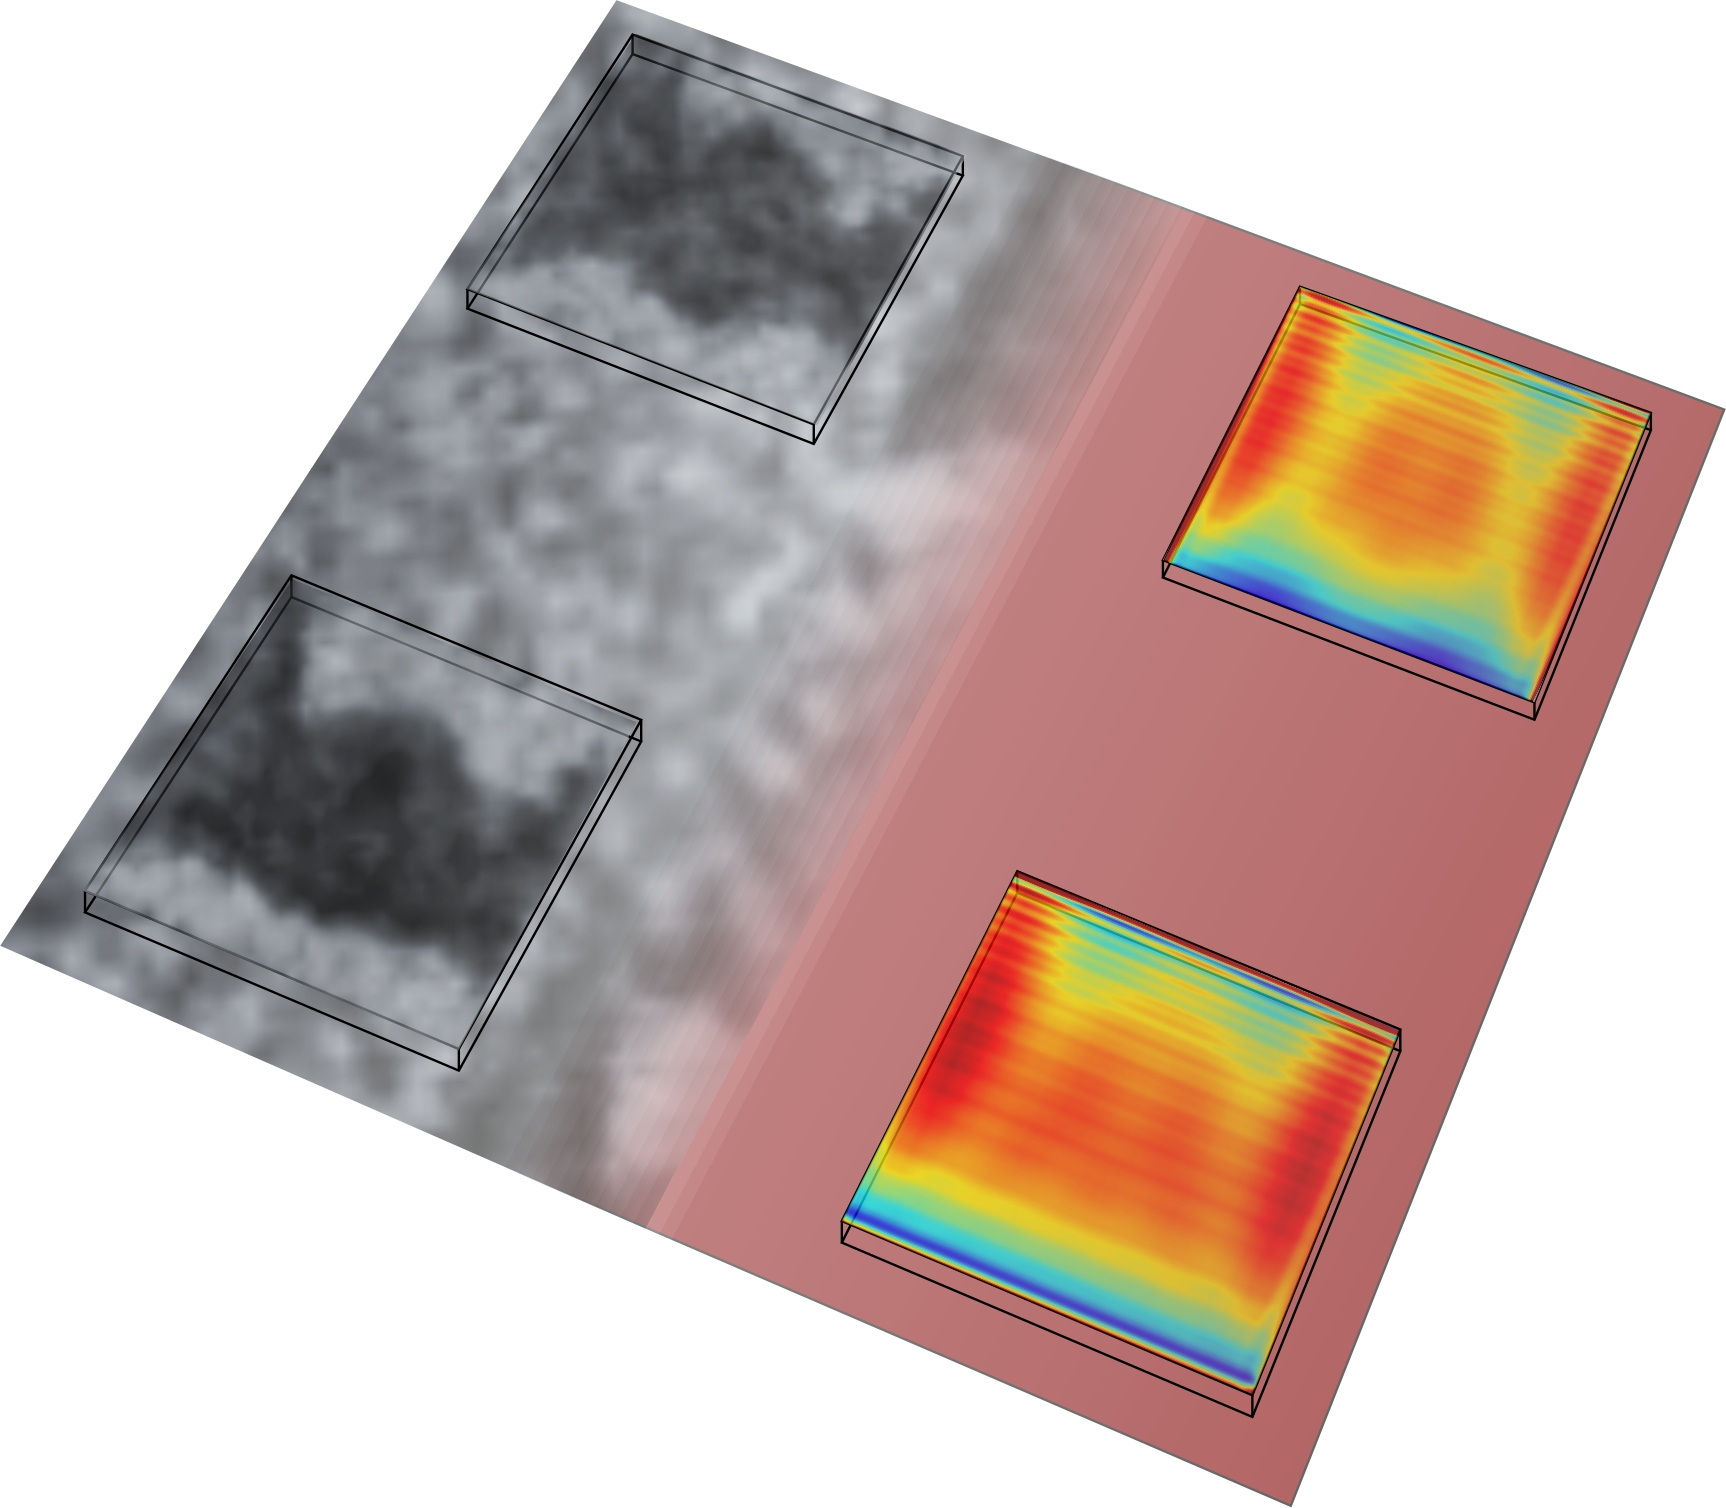 Experiment and theory by comparison: the PSI researchers' Dutch colleagues were able to illustrate the magnetic structures generated by laser beams effectively in computer simulations.